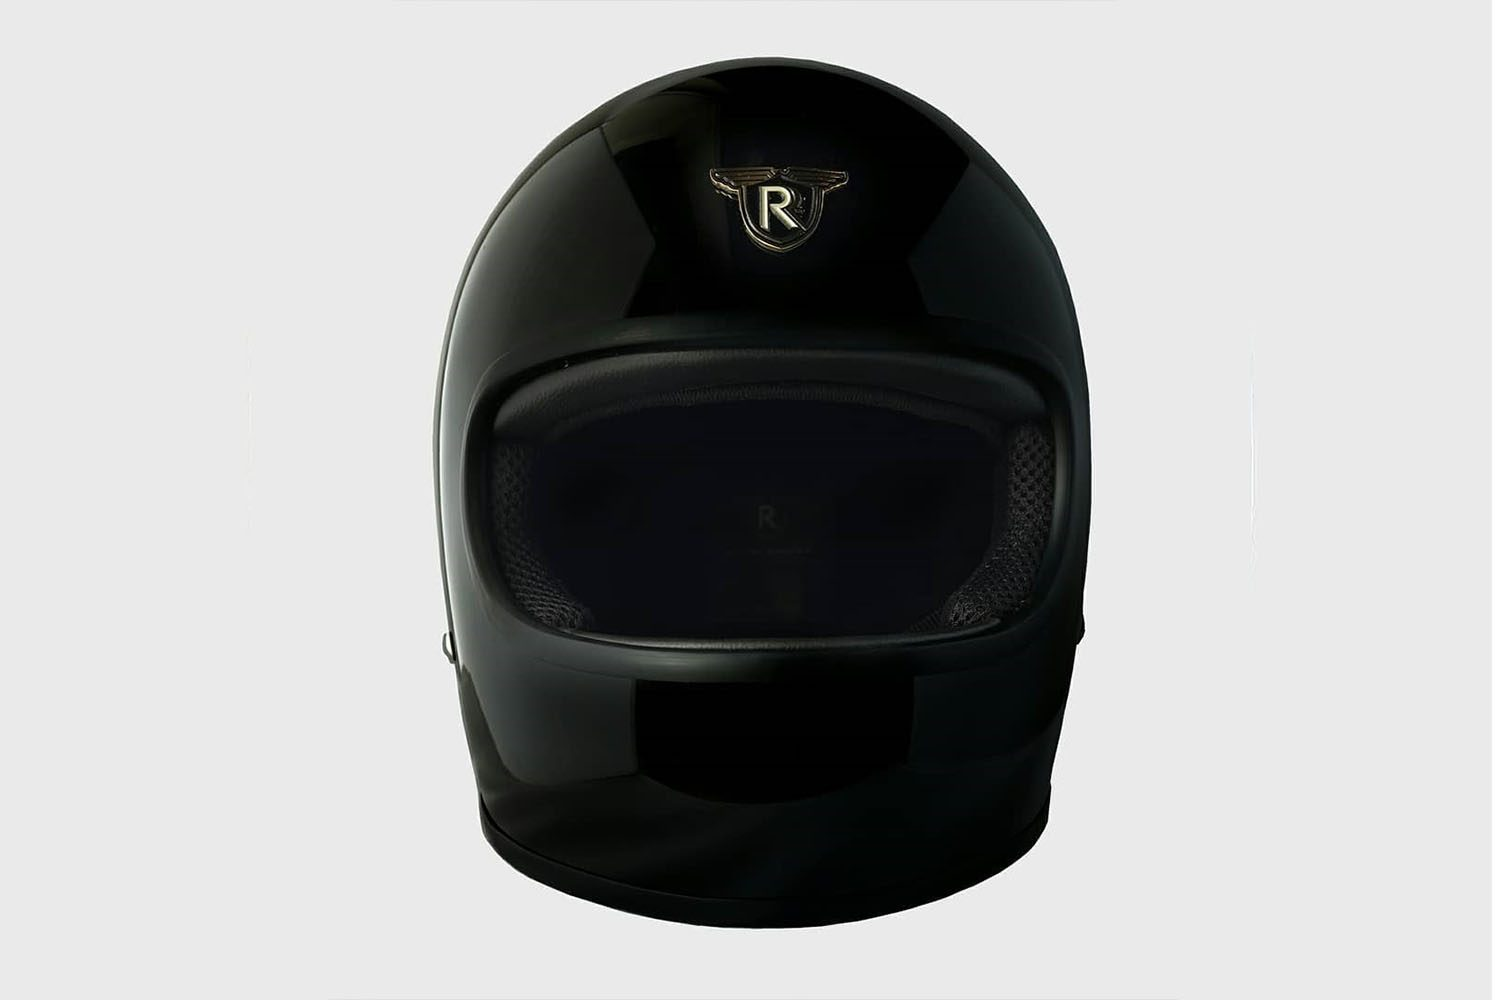 RIDERS AND RULES BOLT HELMET FEATURED IMAGE